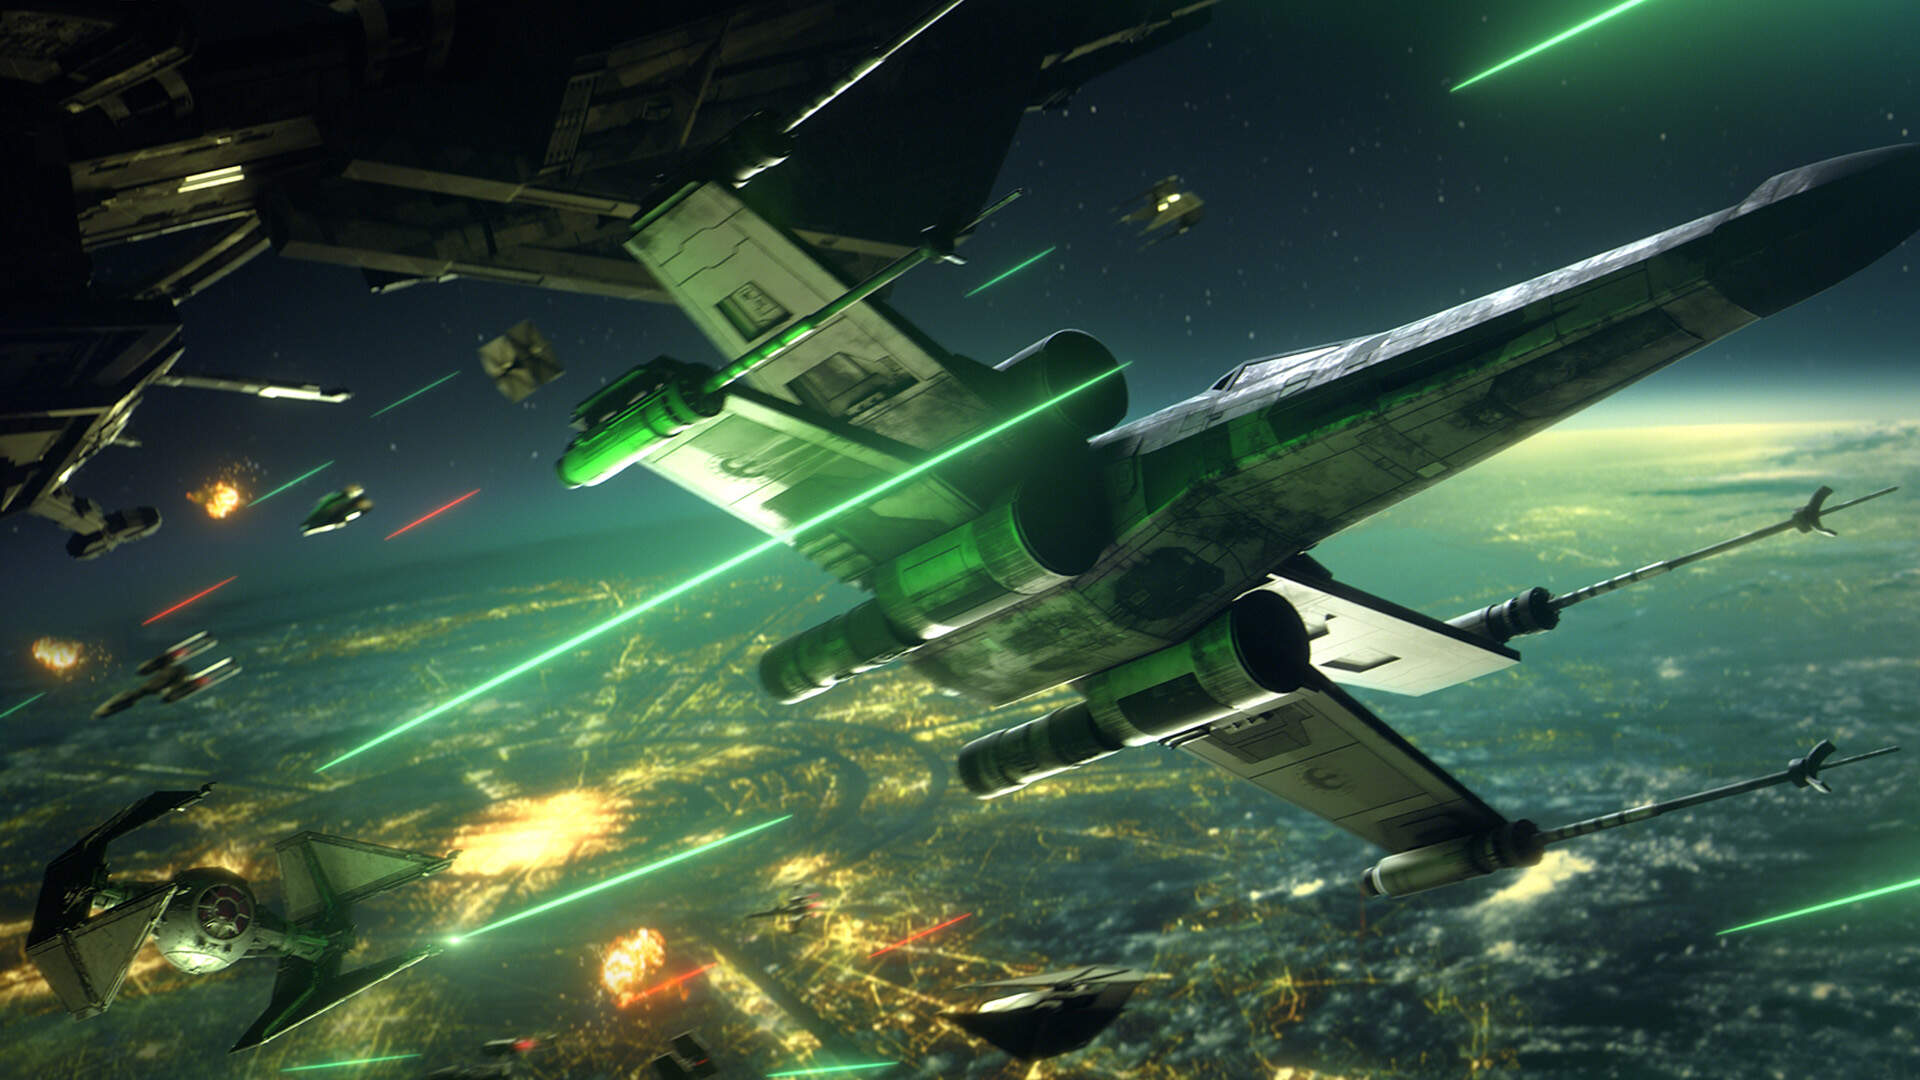 Star Wars: Squadrons Is a New Story Set After Return of the Jedi